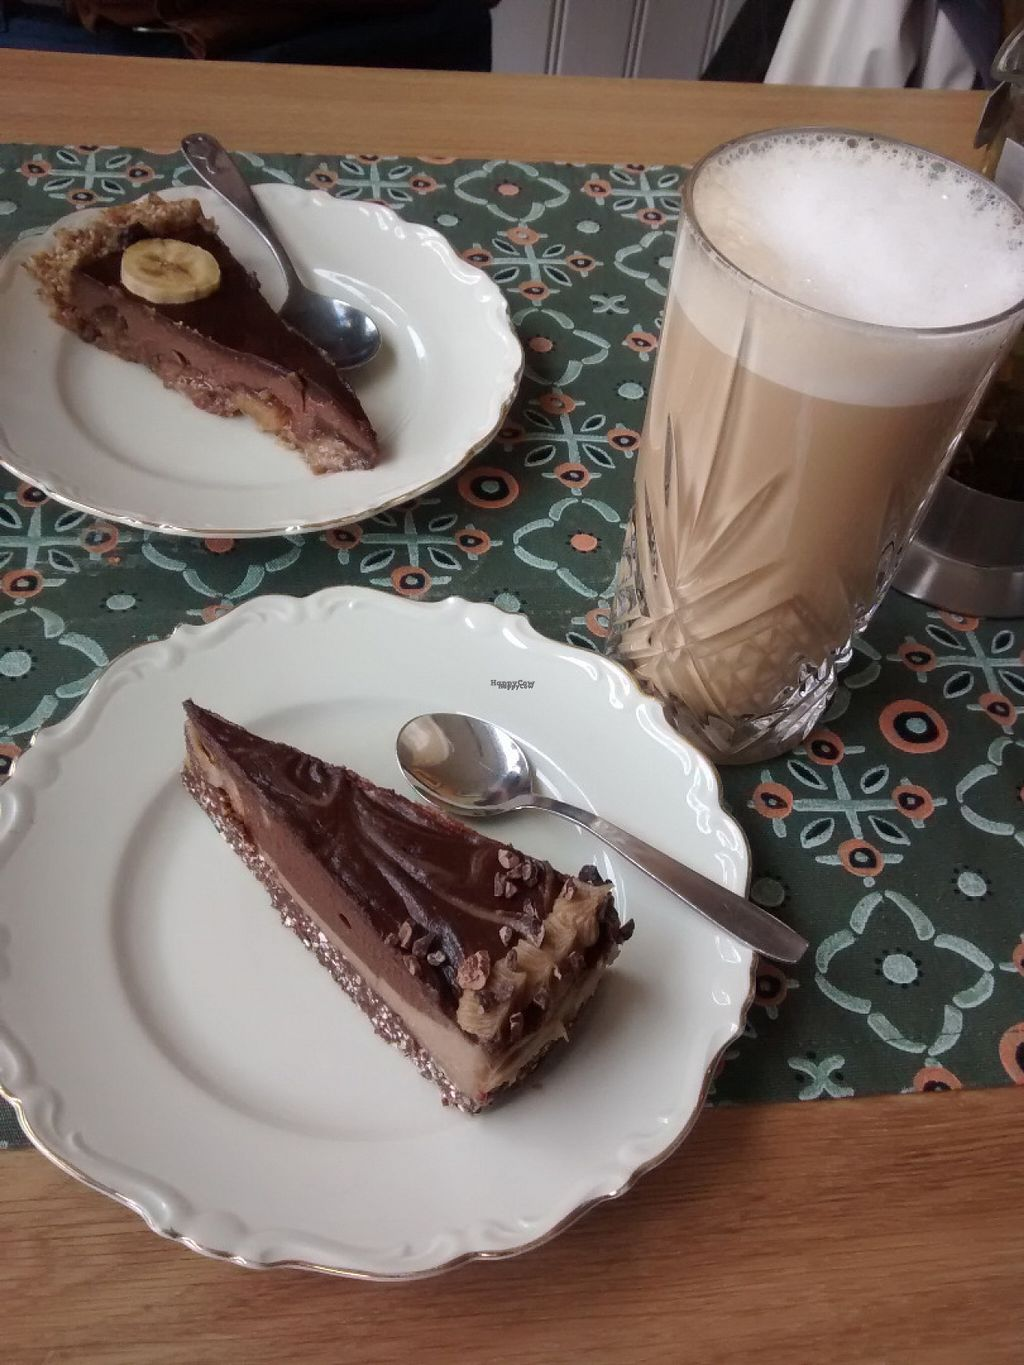 """Photo of Mandel & Malla  by <a href=""""/members/profile/Nina%20Organicwala.in"""">Nina Organicwala.in</a> <br/>Raw chocolate-mint and chocolate-banana cakes, and almond-latte, all very yummy! <br/> August 18, 2016  - <a href='/contact/abuse/image/78093/169802'>Report</a>"""